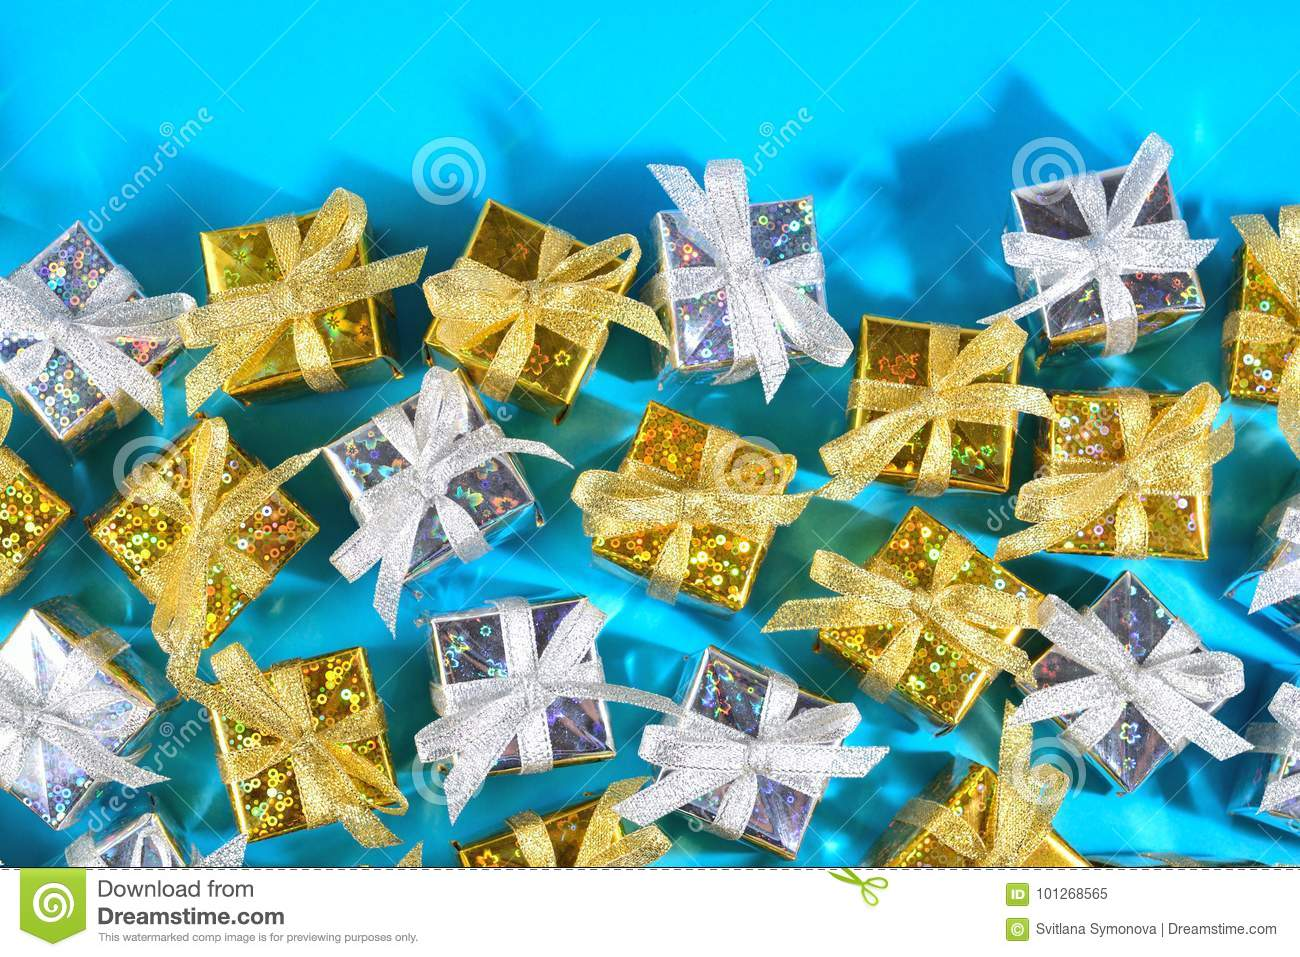 Top view of golden and silver gifts close-up on a blue